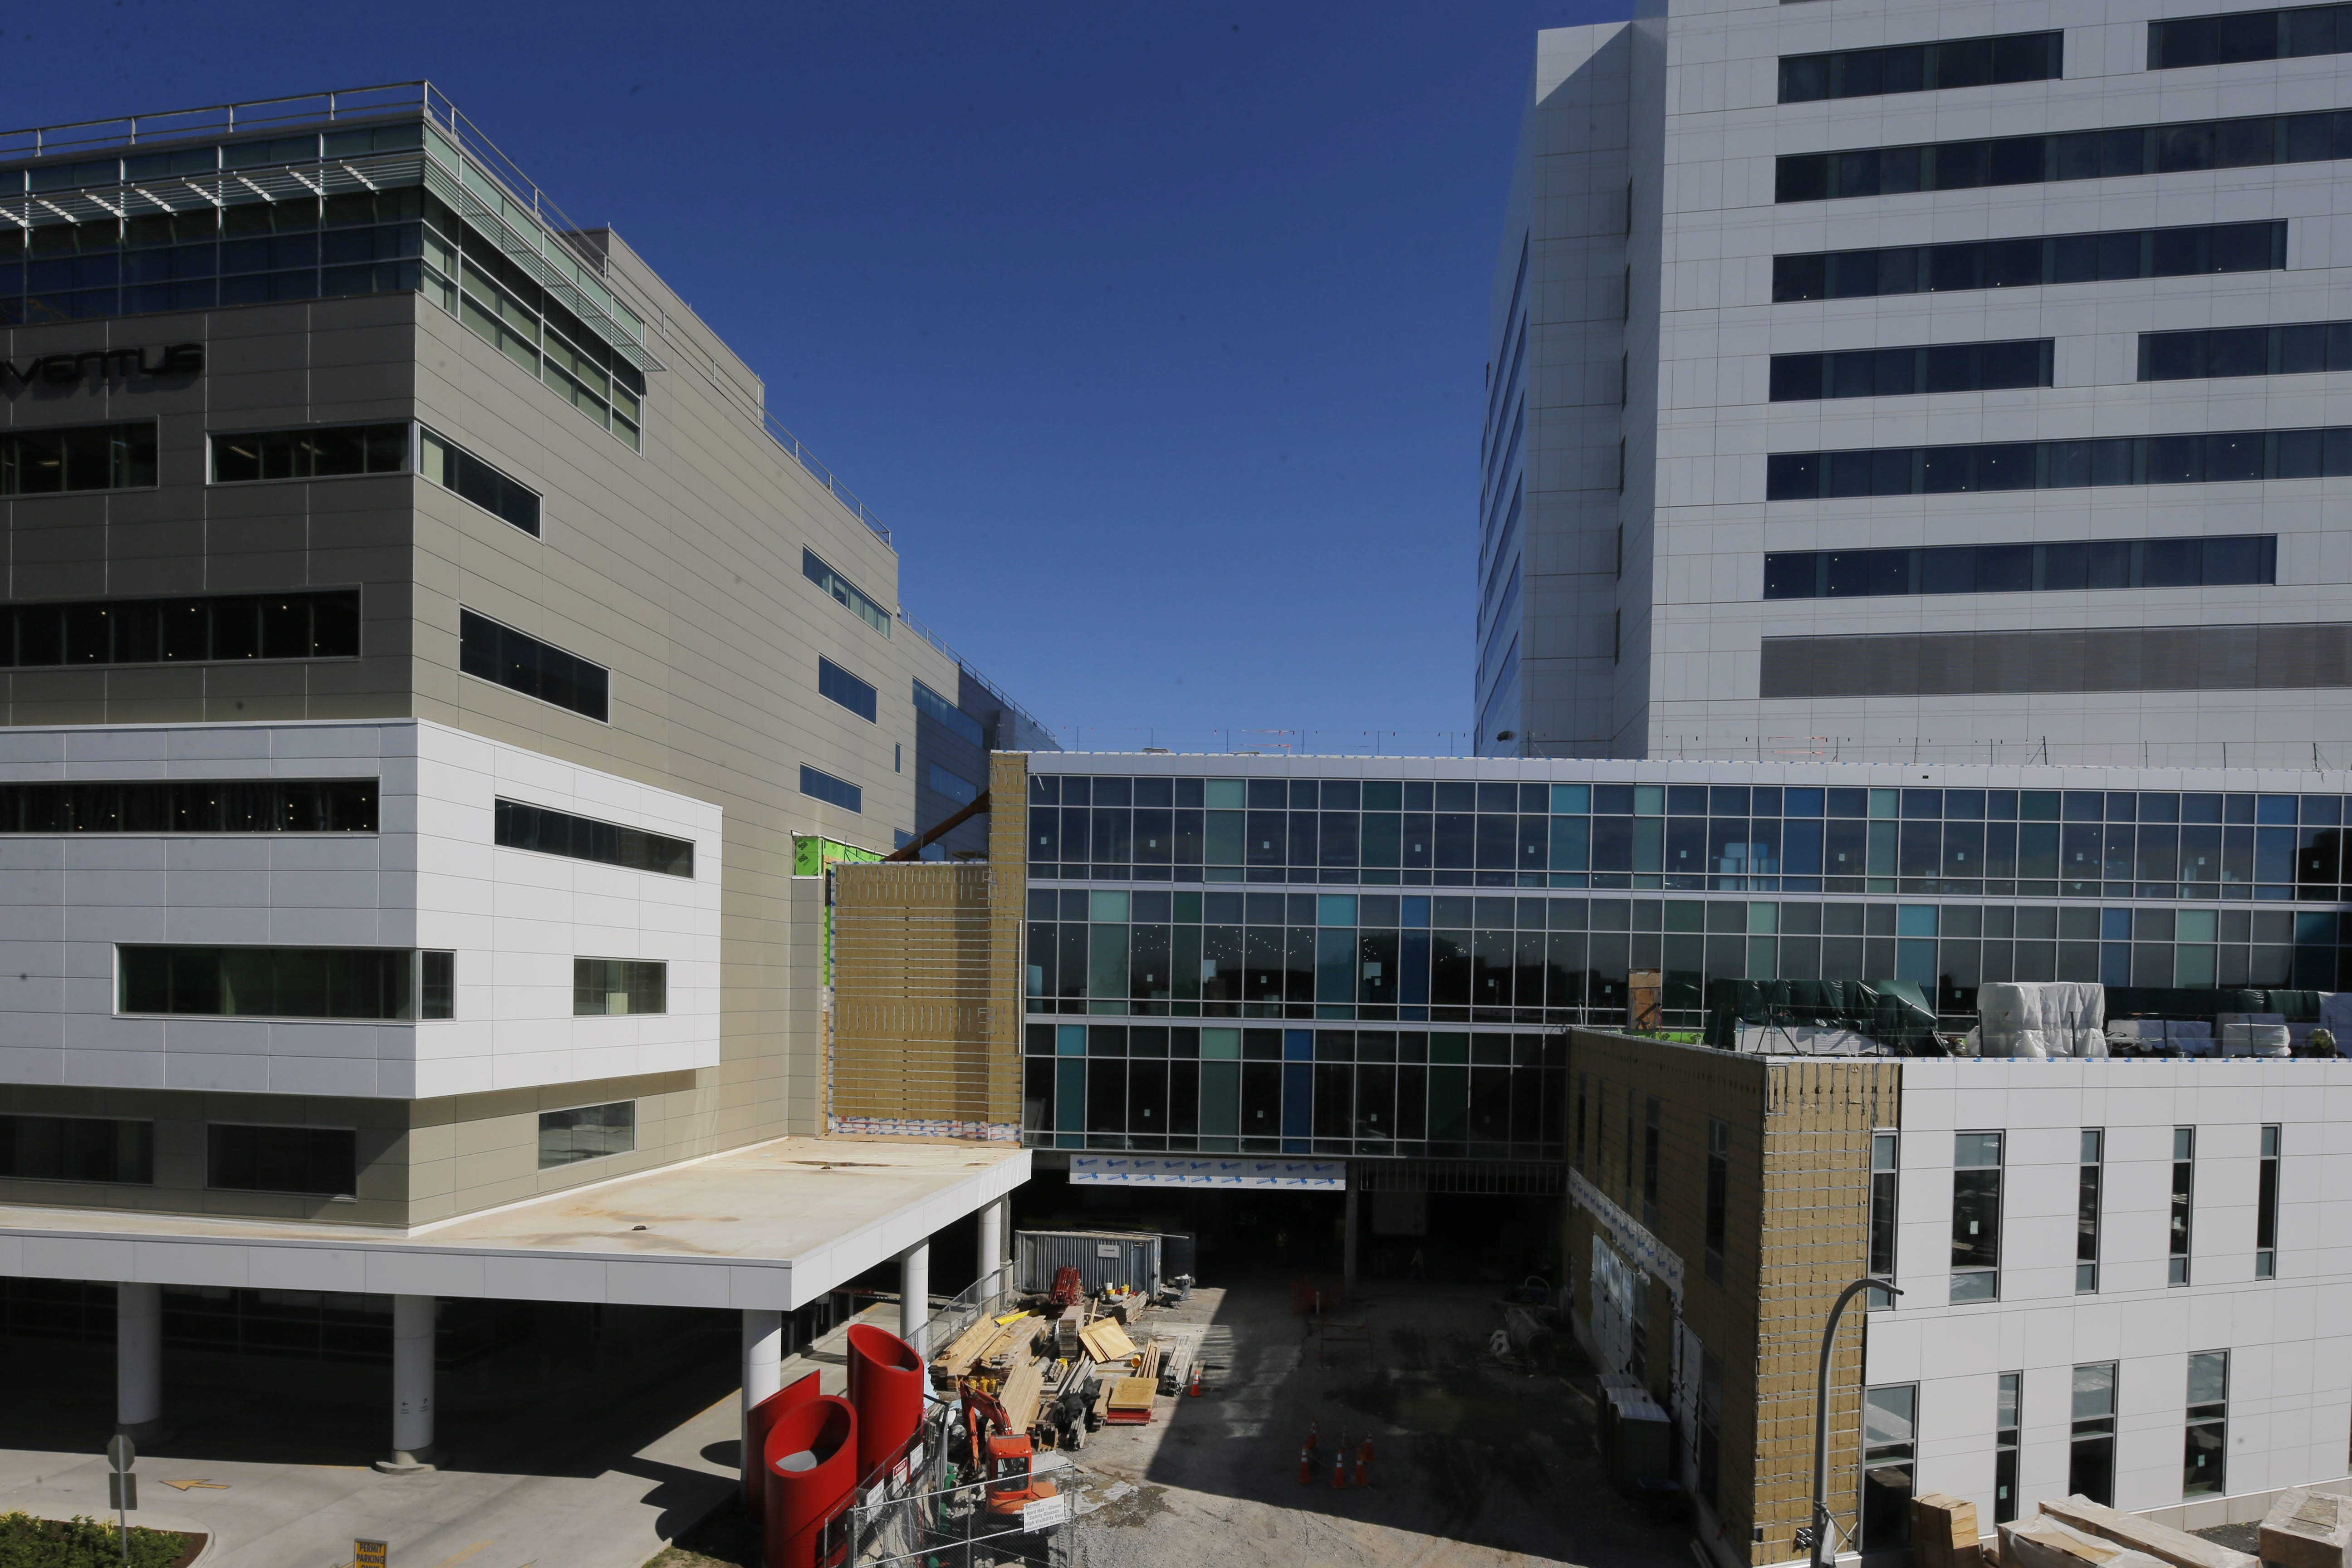 Conventus, left, the site of the Oishei Children's Outpatient Center, and the future Oishei Children's Hospital, right, on the Buffalo Niagara Medical Campus, shown early in 2016. (Derek Gee/Buffalo News)